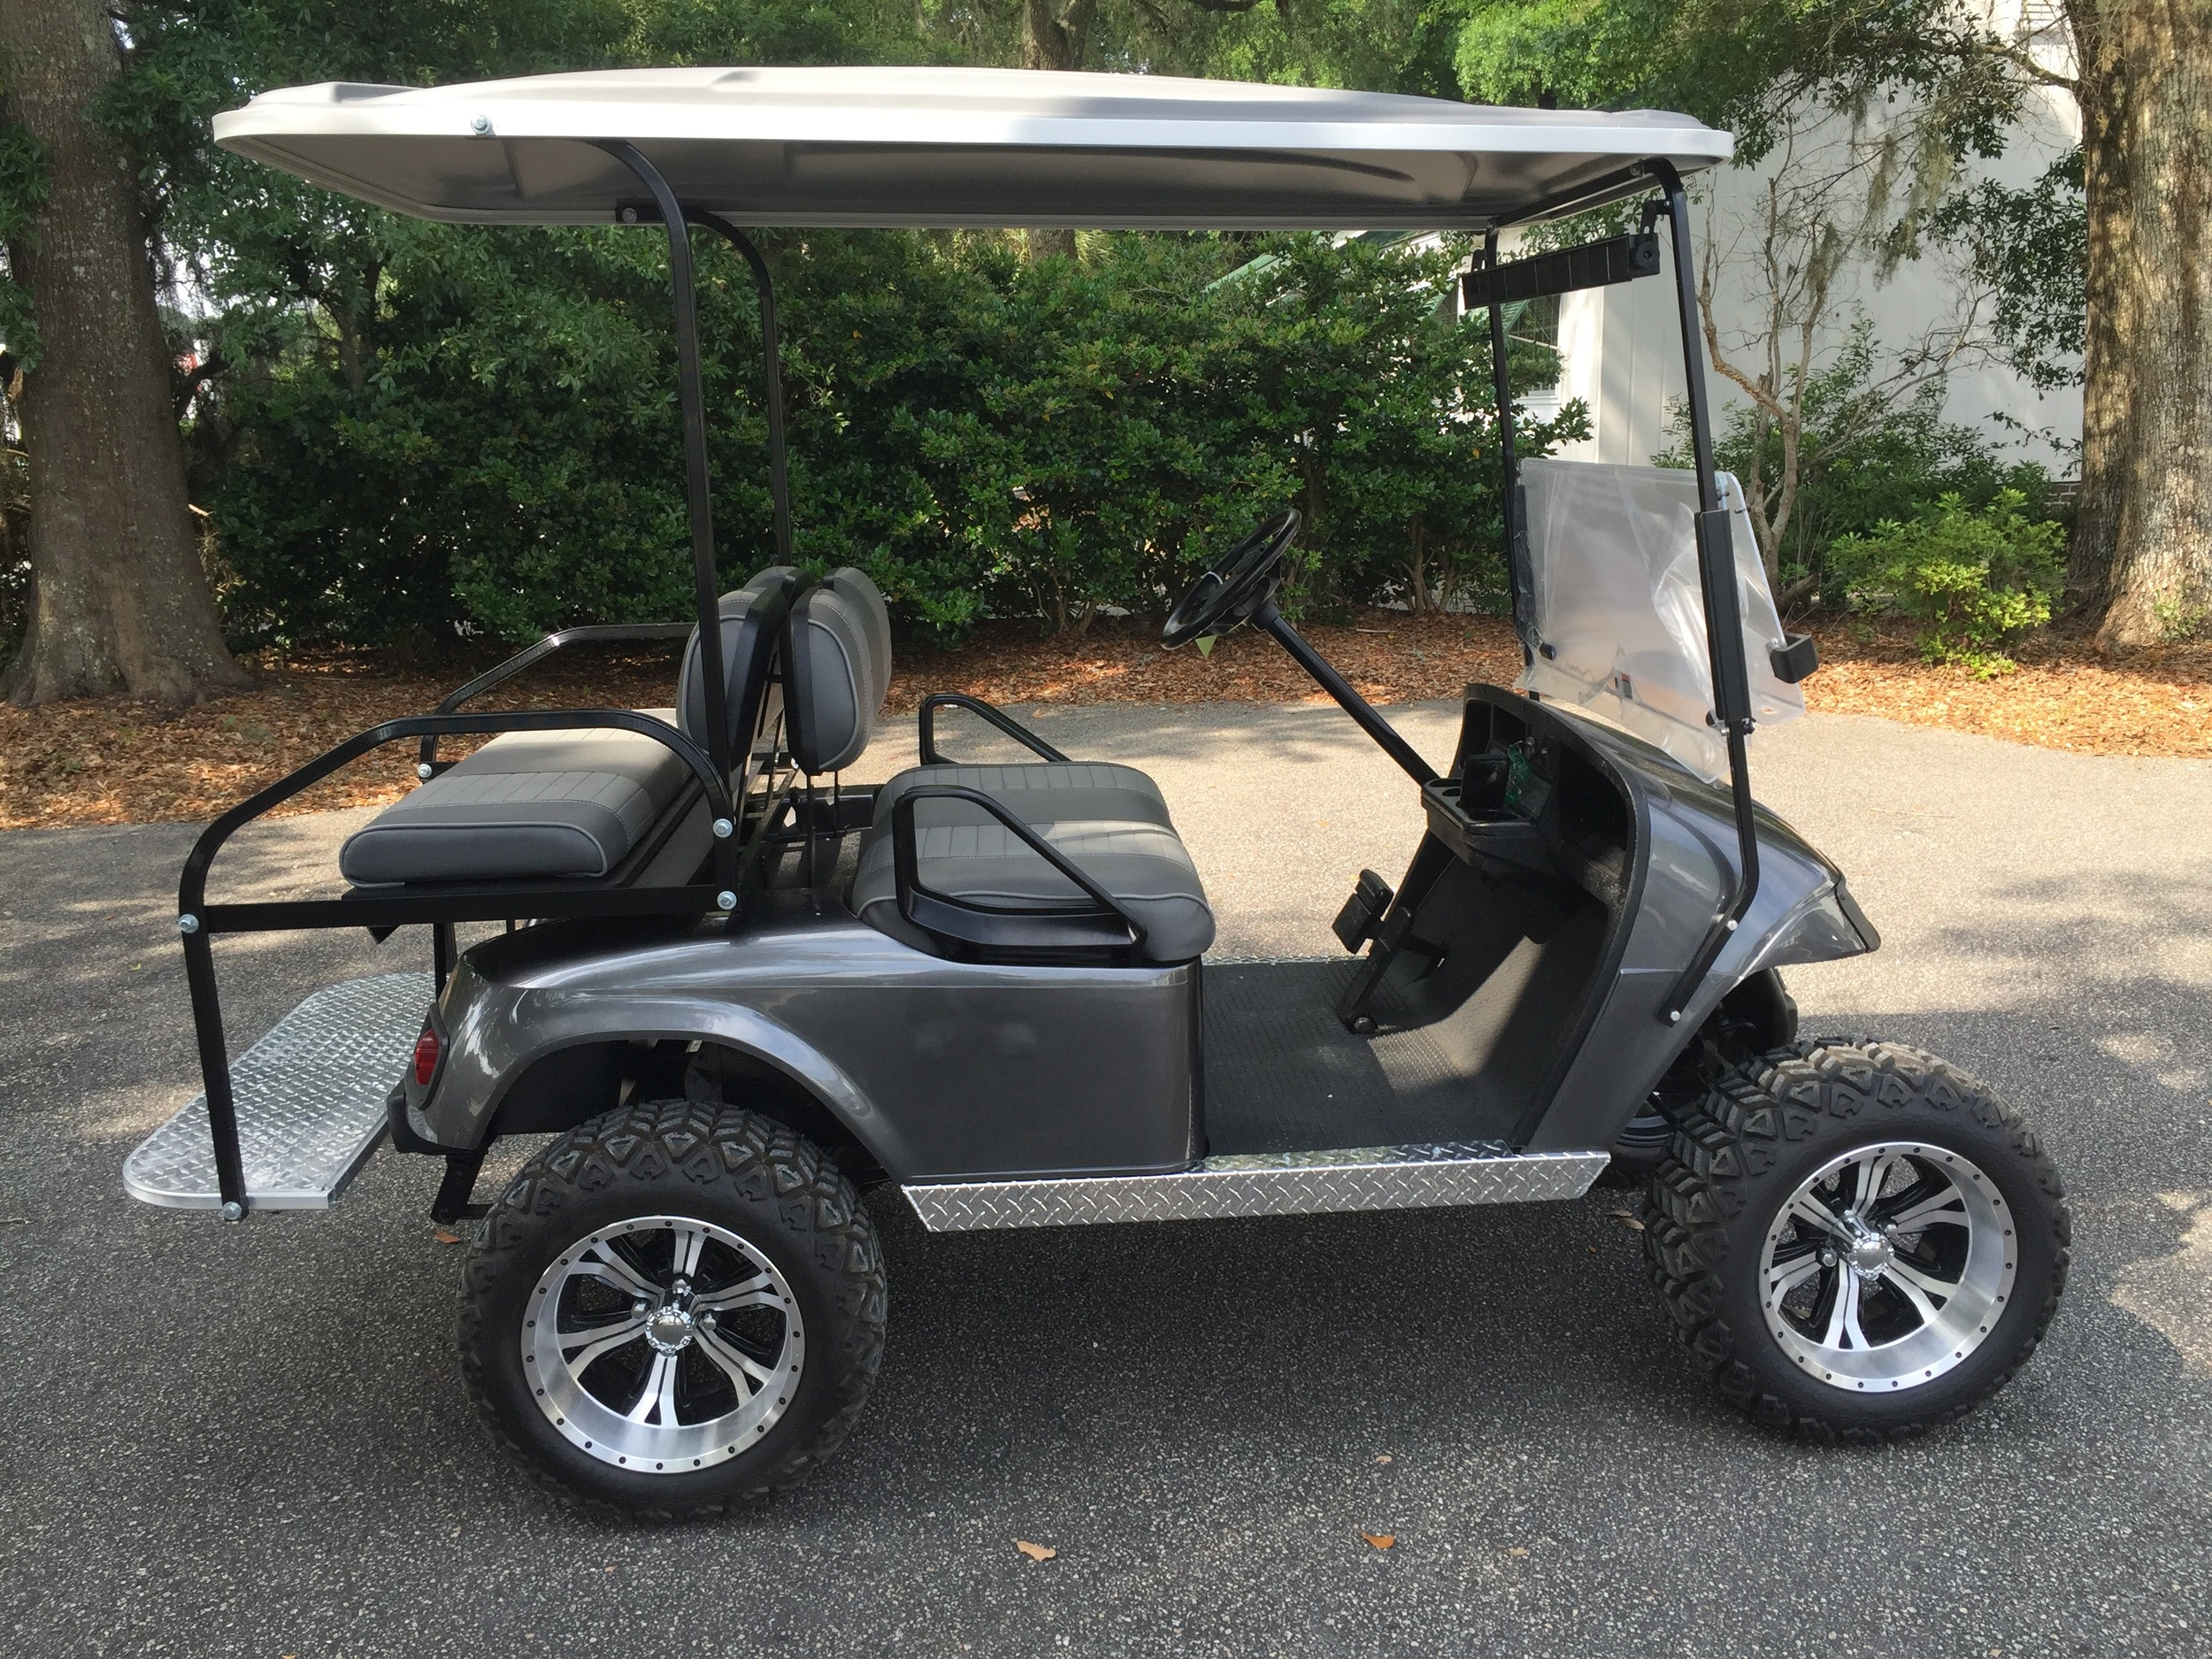 2015 Charcoal EZGO Lifted Cart ———In Stock  Charcoal/smoke seats, gray extended top, new 2019 batteries 48vt (6-8), high speed code, state of charge meter, LED lights, Backlash (23x10x14) tires, mirror, and flip windshield